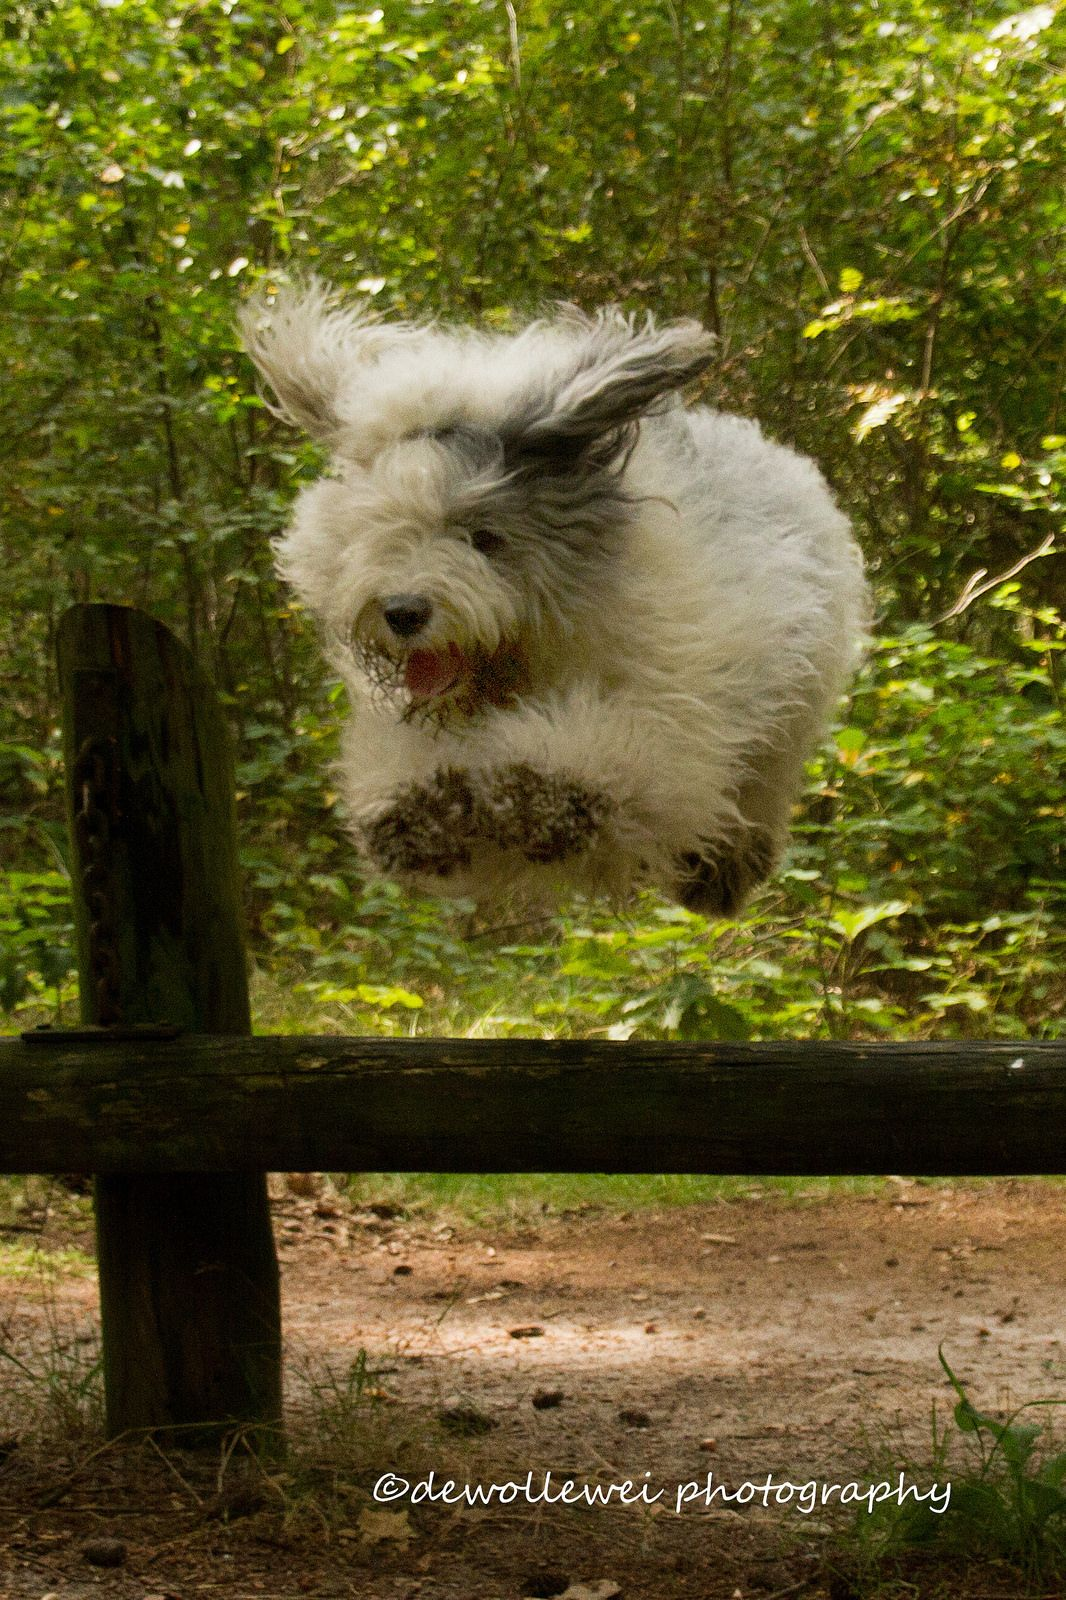 jump (With images) Old english sheepdog, Cute dogs